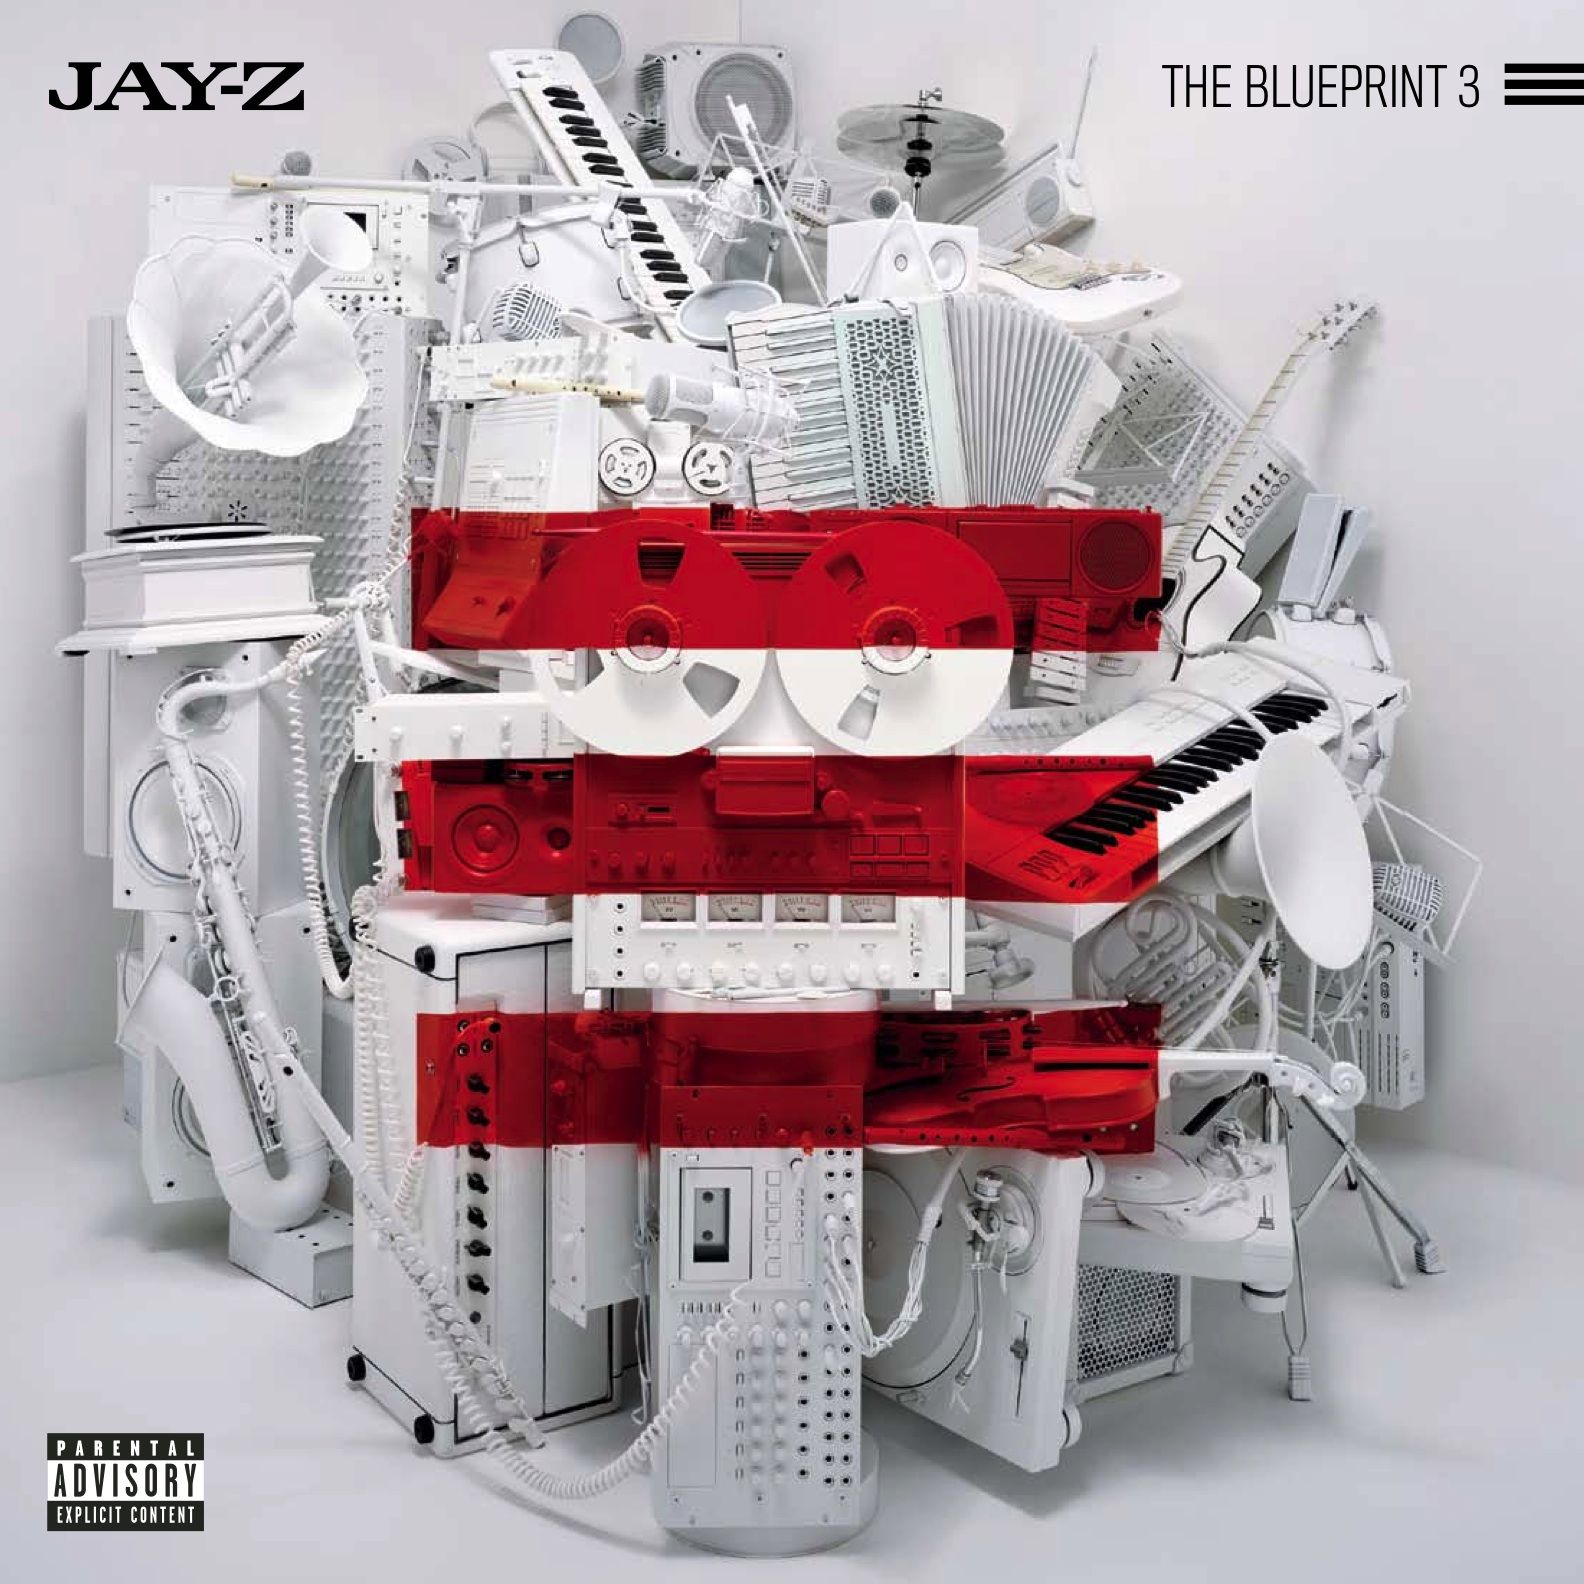 Jay z the blueprint 3 one of the best rap albums ever yeah i jay z the blueprint 3 one of the best rap albums ever malvernweather Choice Image